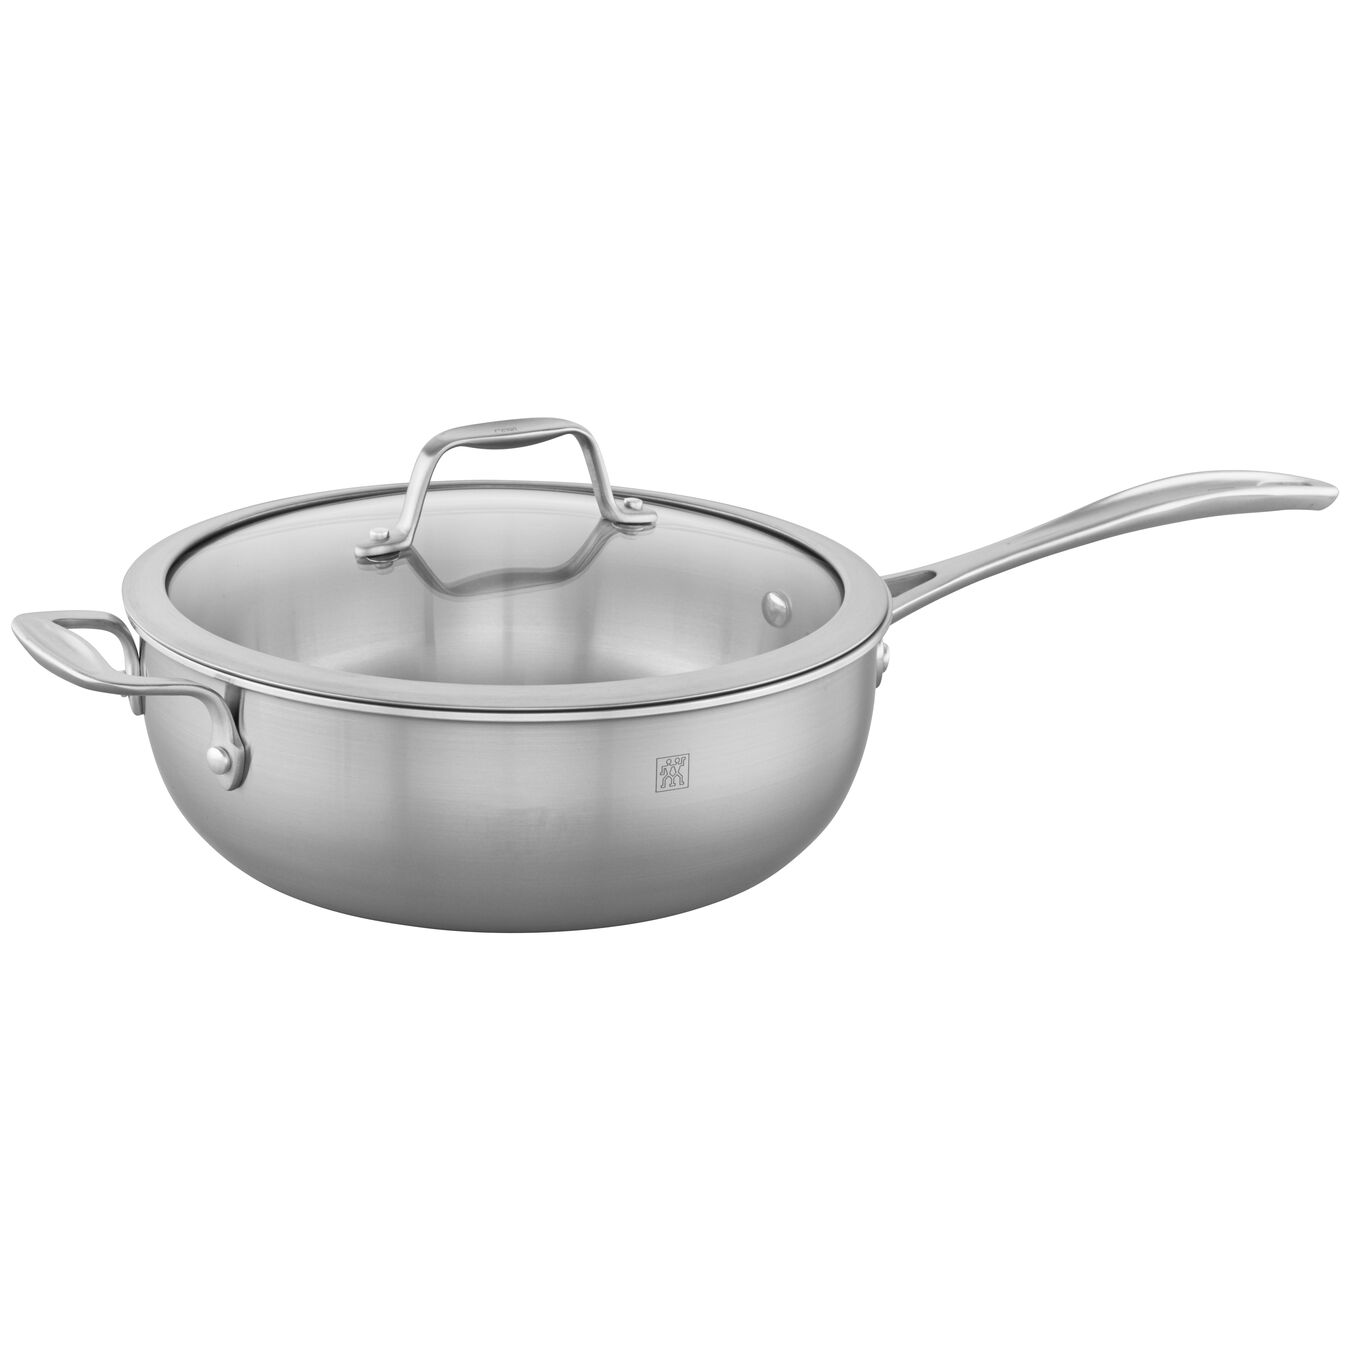 10-inch, 18/10 Stainless Steel, Non-stick, Saute pan,,large 1